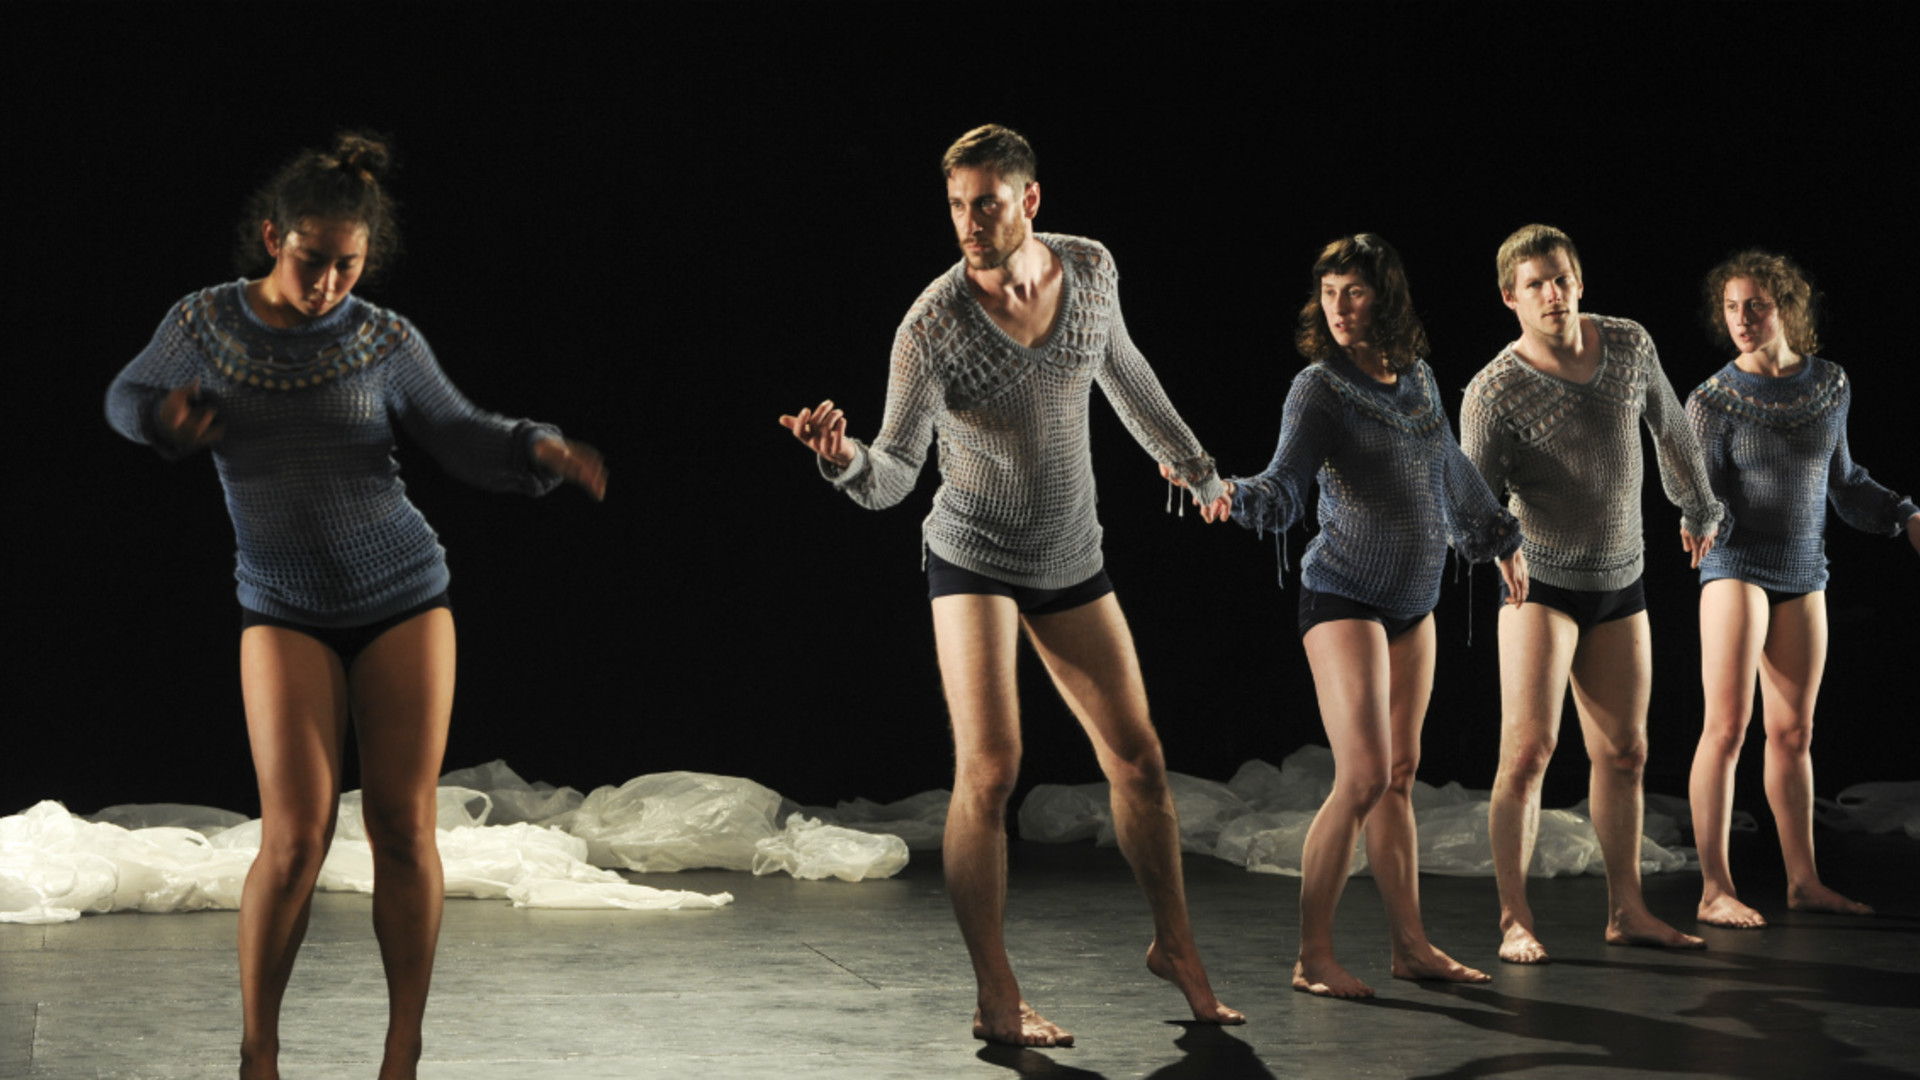 Dancers stand in a line, linking hands while another dancer sways her hips.